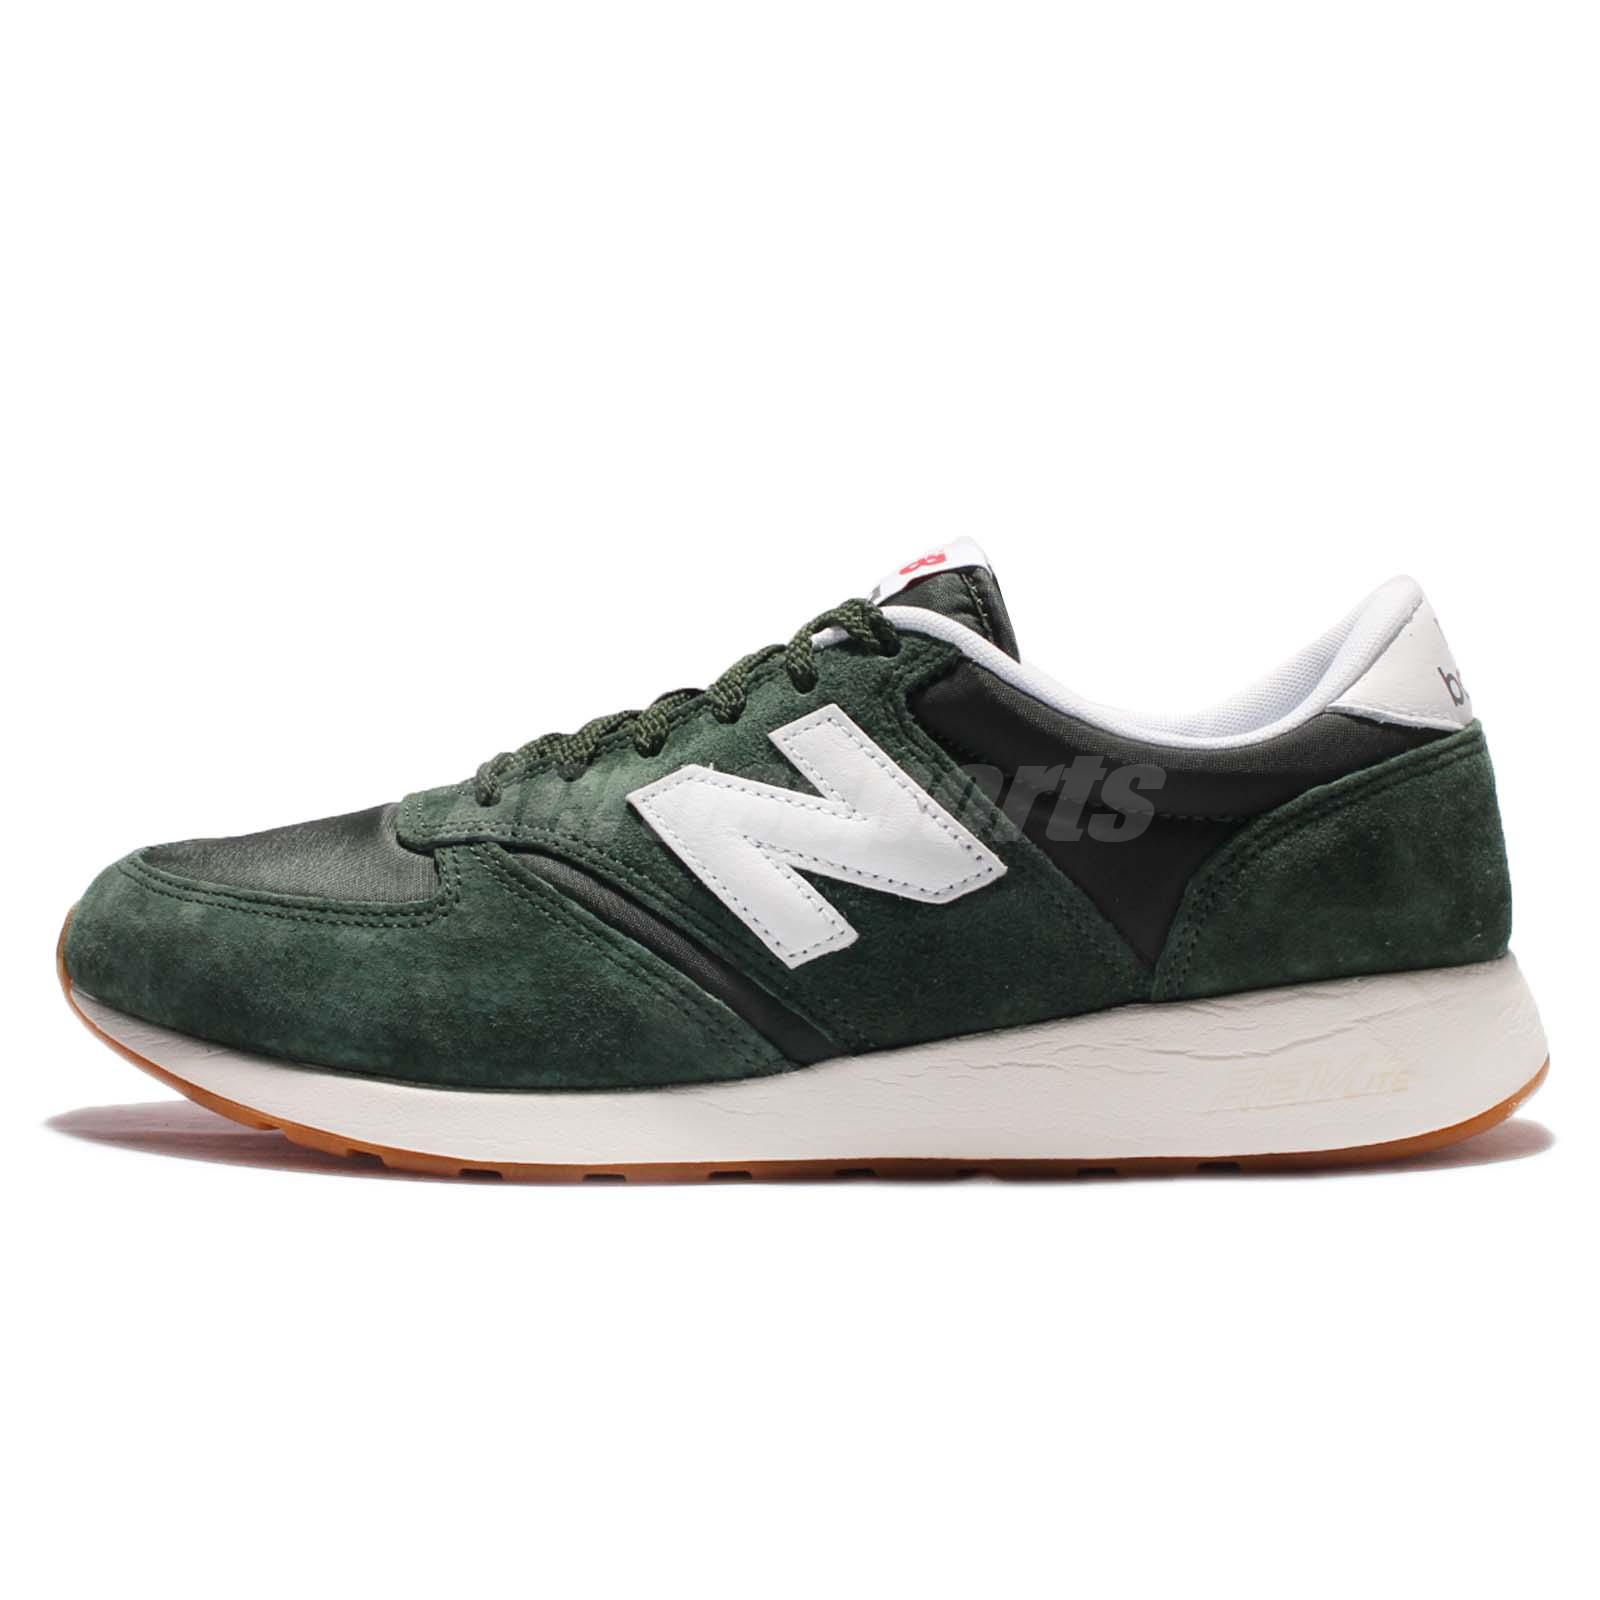 420 new balance mens nz